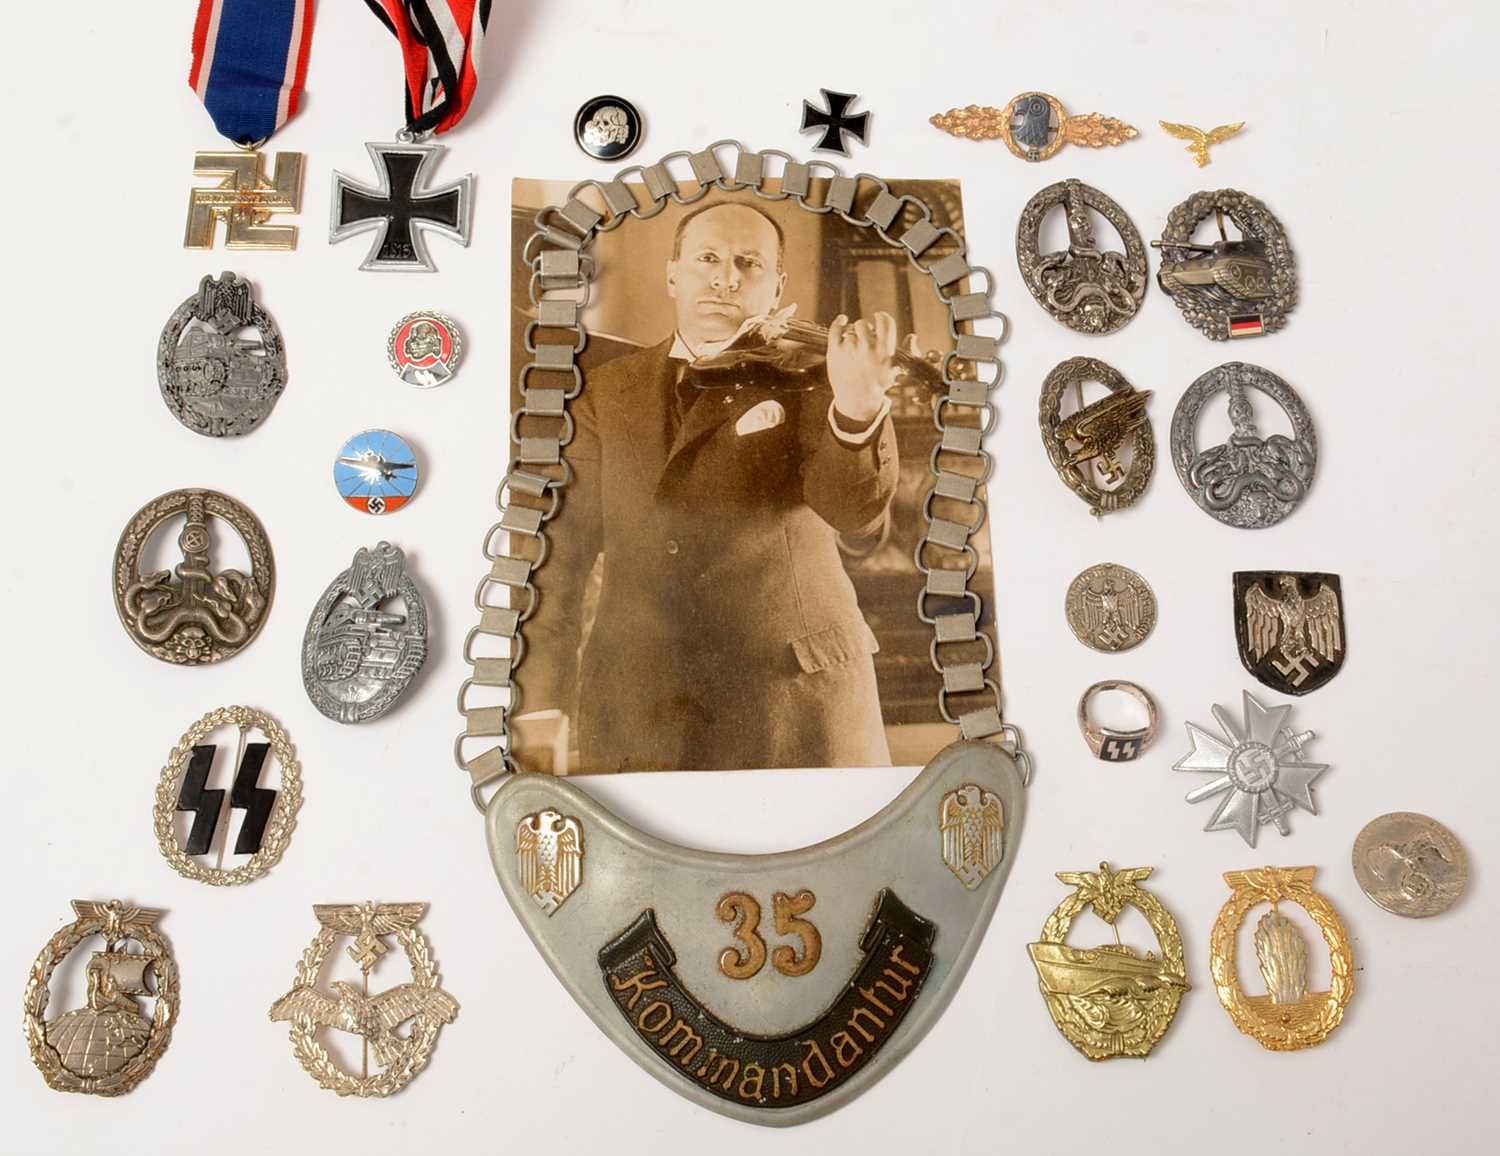 Lot 1026 - A Collection of reproduction WWII German award badges and medals etc